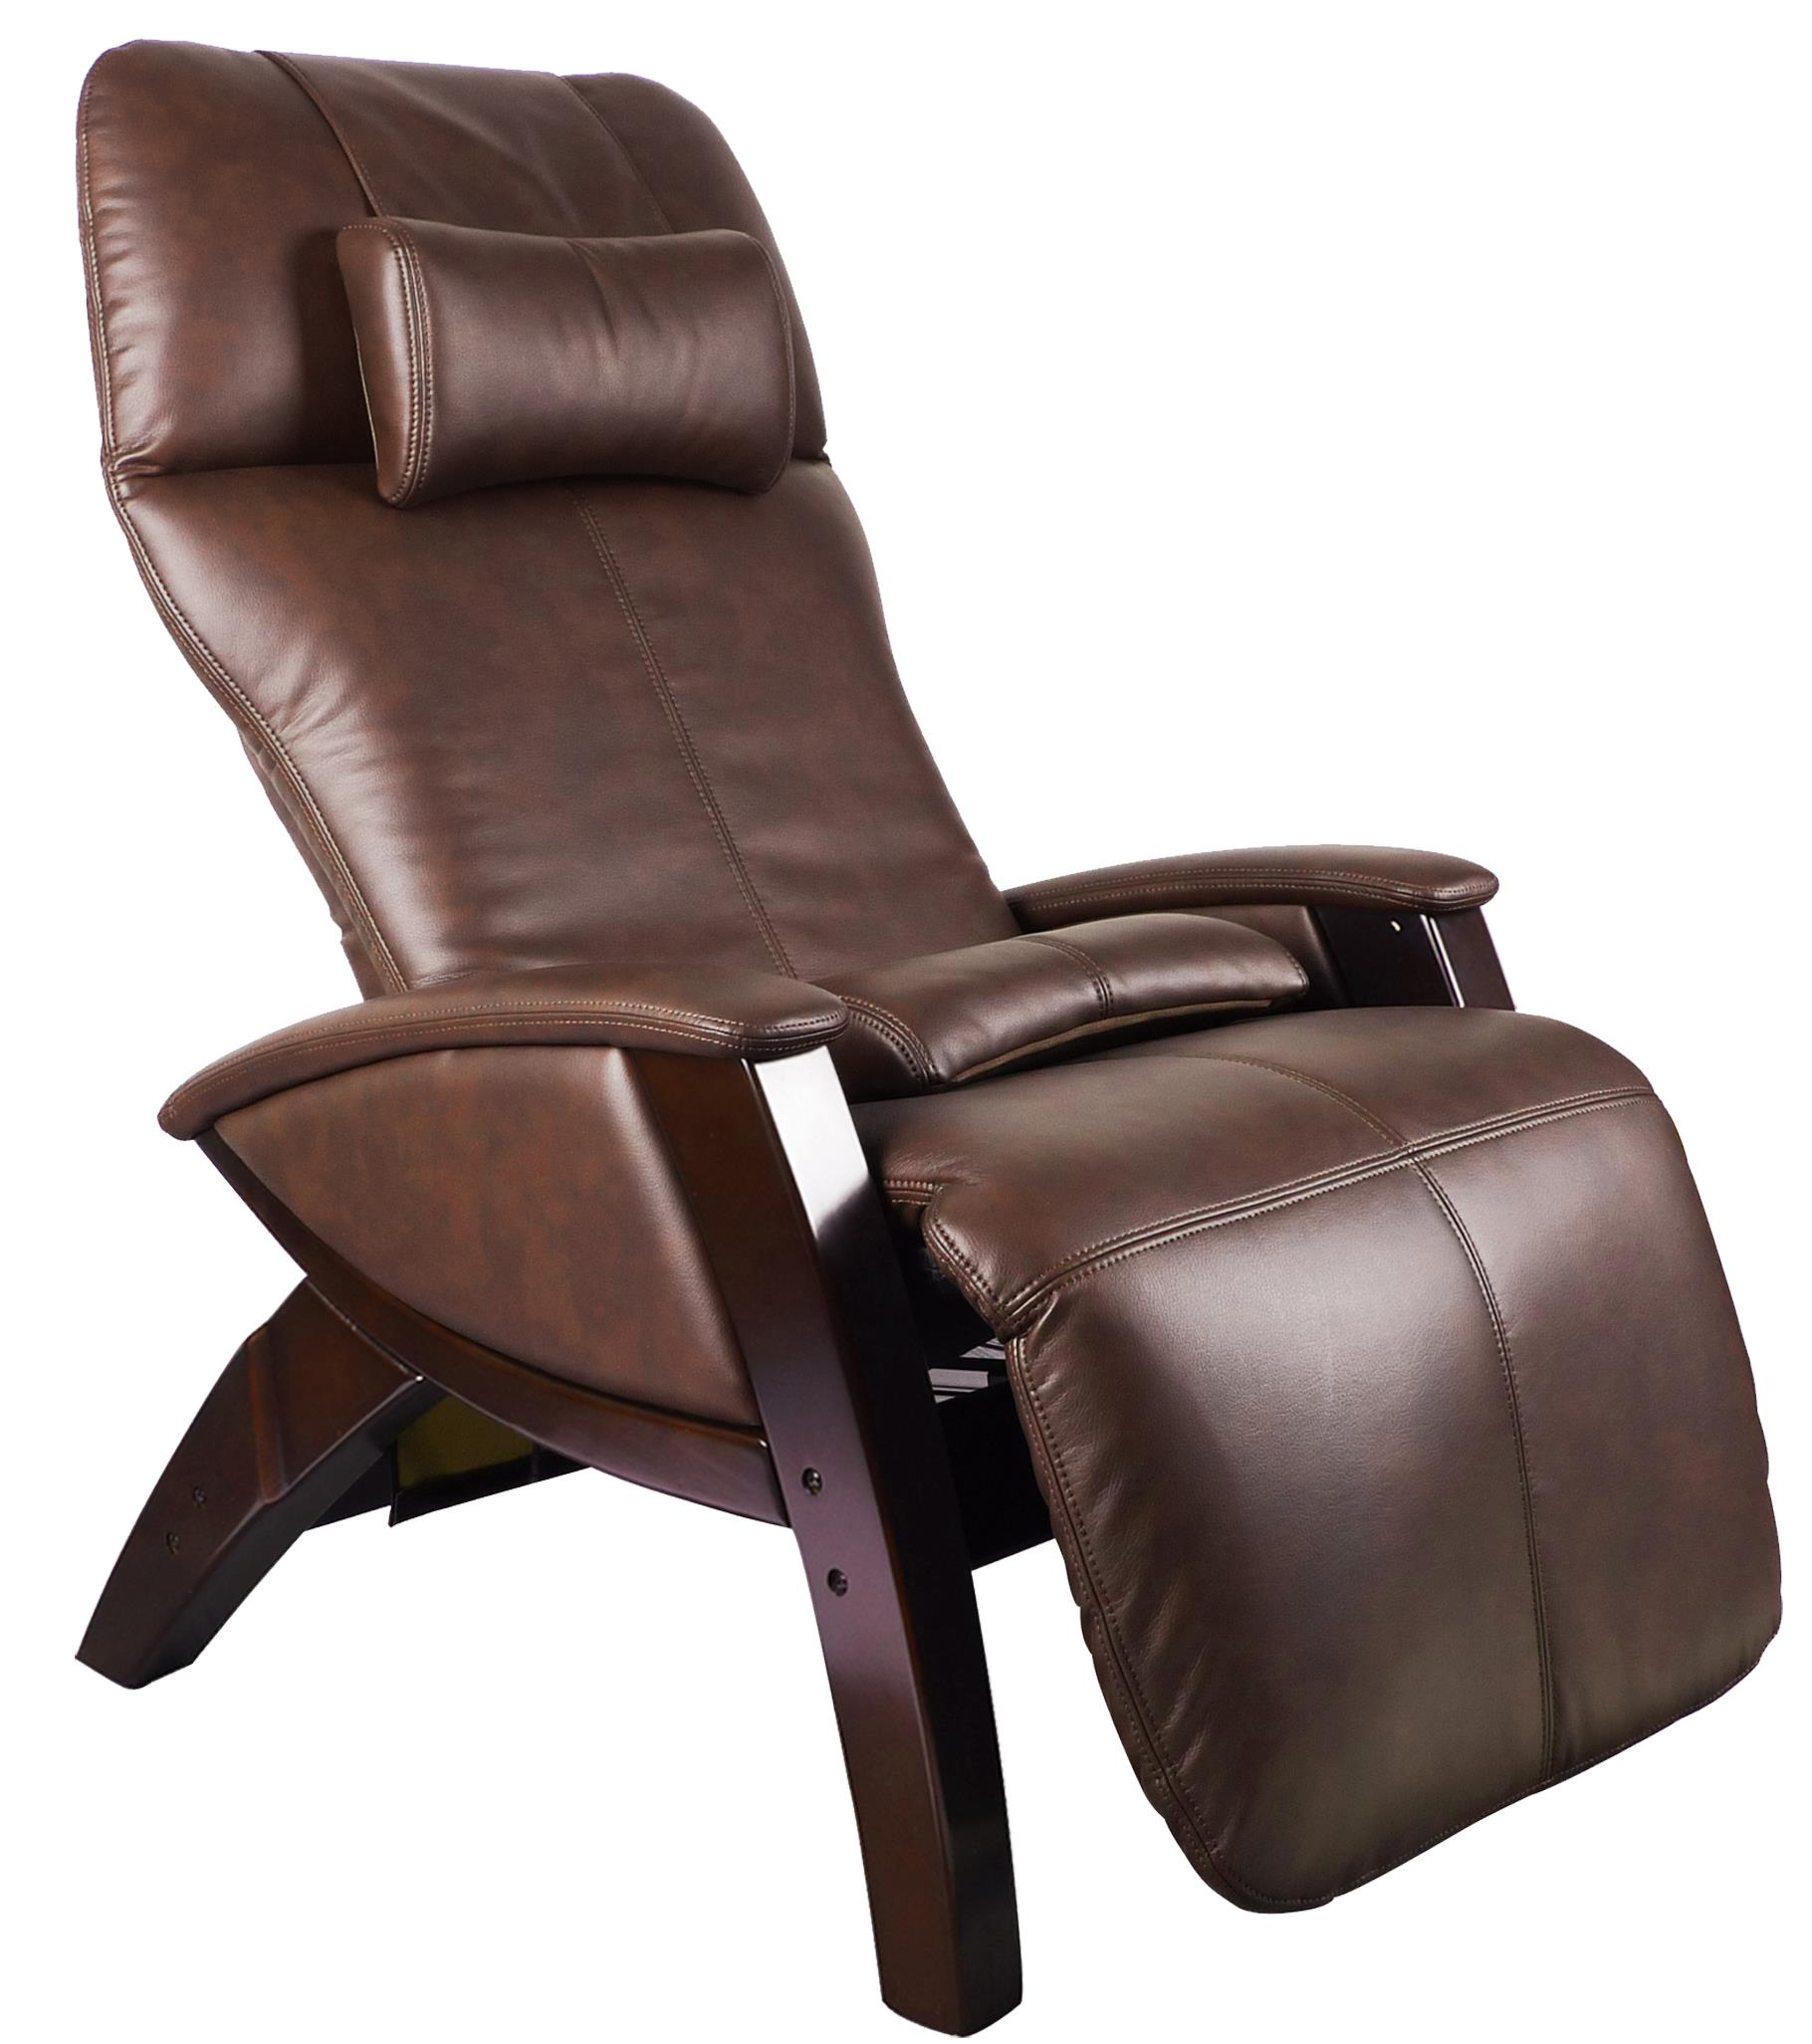 Svago Chair Cozzia Svago Sv 410 89 Dw Benessere Zero Gravity Power